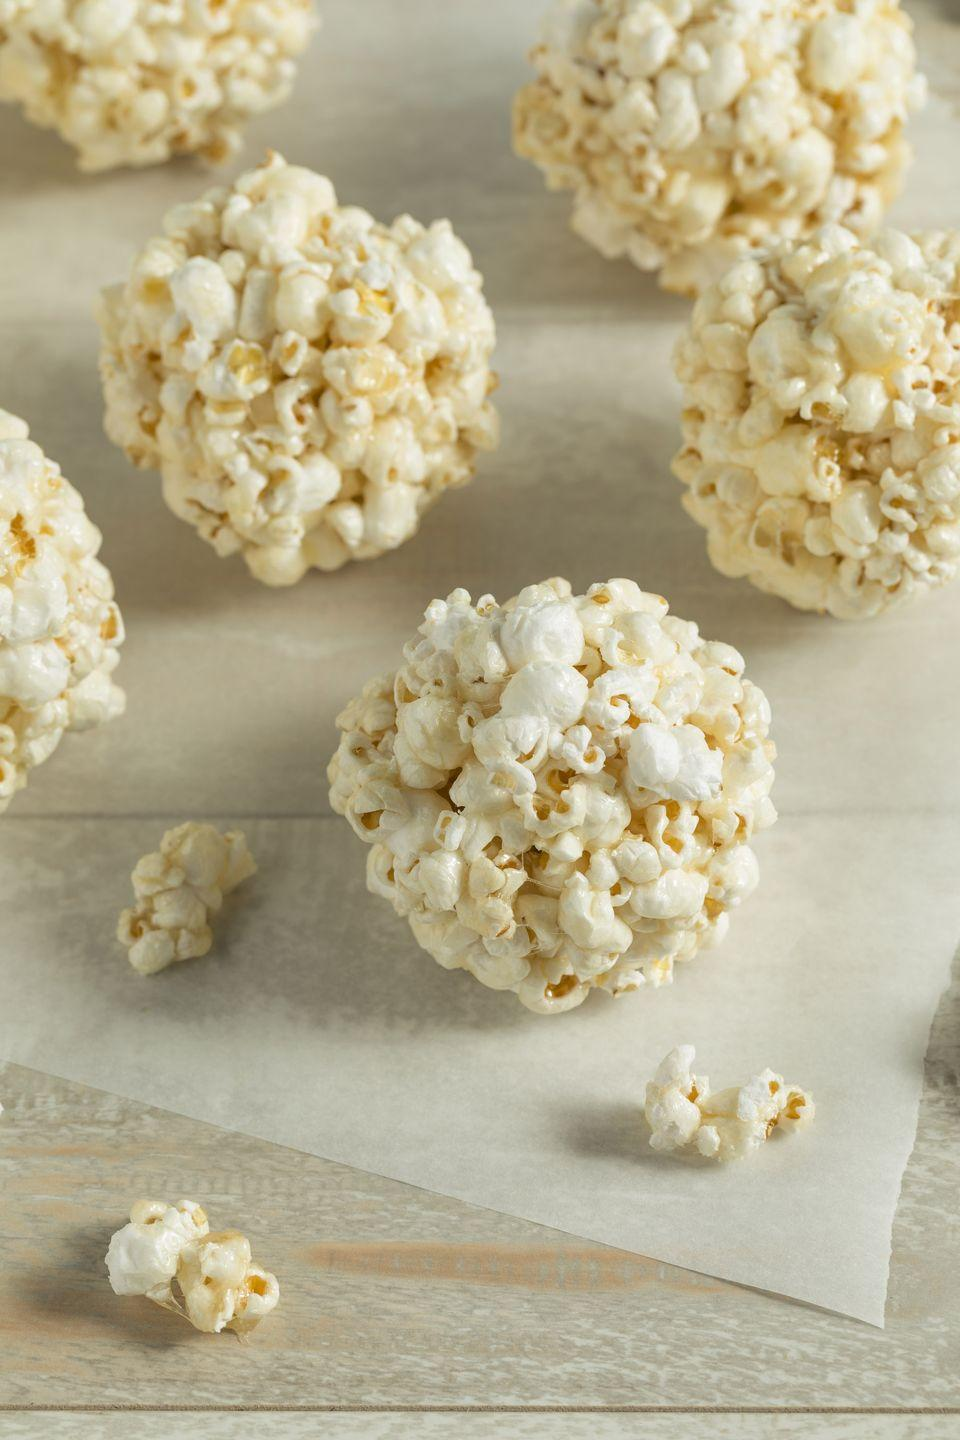 """<p>Mix in your favorite candies into these popcorn balls for an irresistibly sweet and sticky treat.</p><p><strong><a href=""""https://www.countryliving.com/food-drinks/recipes/a1973/sweet-popcorn-balls-clv1007/"""" rel=""""nofollow noopener"""" target=""""_blank"""" data-ylk=""""slk:Get the recipe"""" class=""""link rapid-noclick-resp"""">Get the recipe</a>.</strong></p>"""